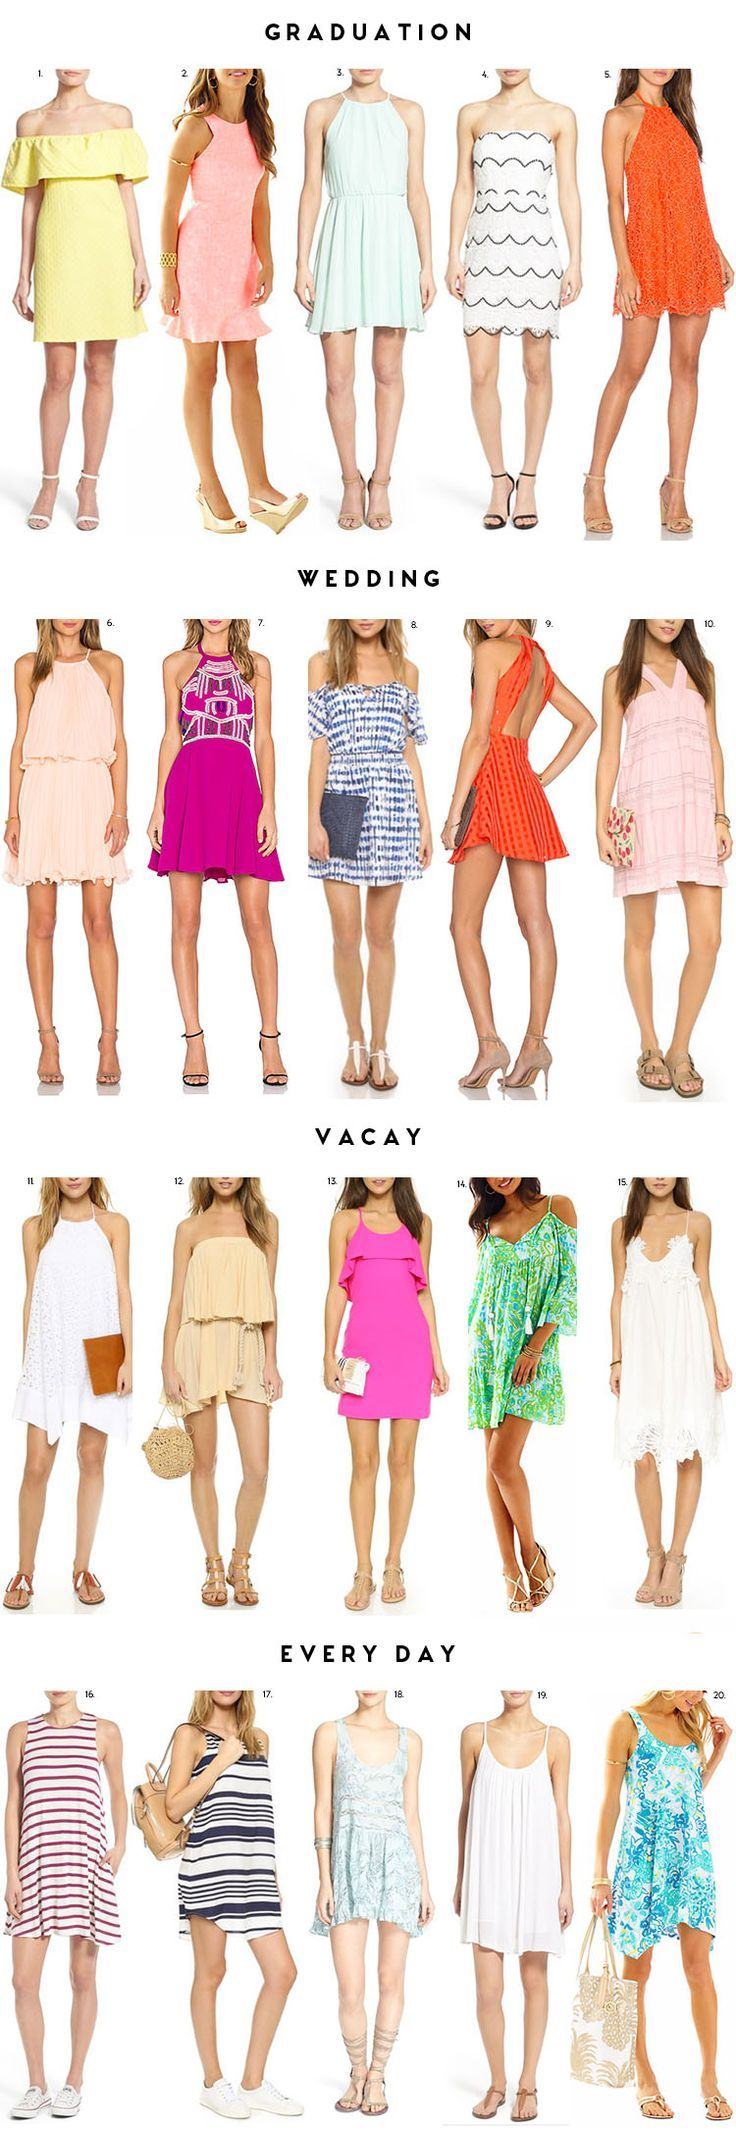 Spring Dress Guide Dresses Spring Dresses Fashion